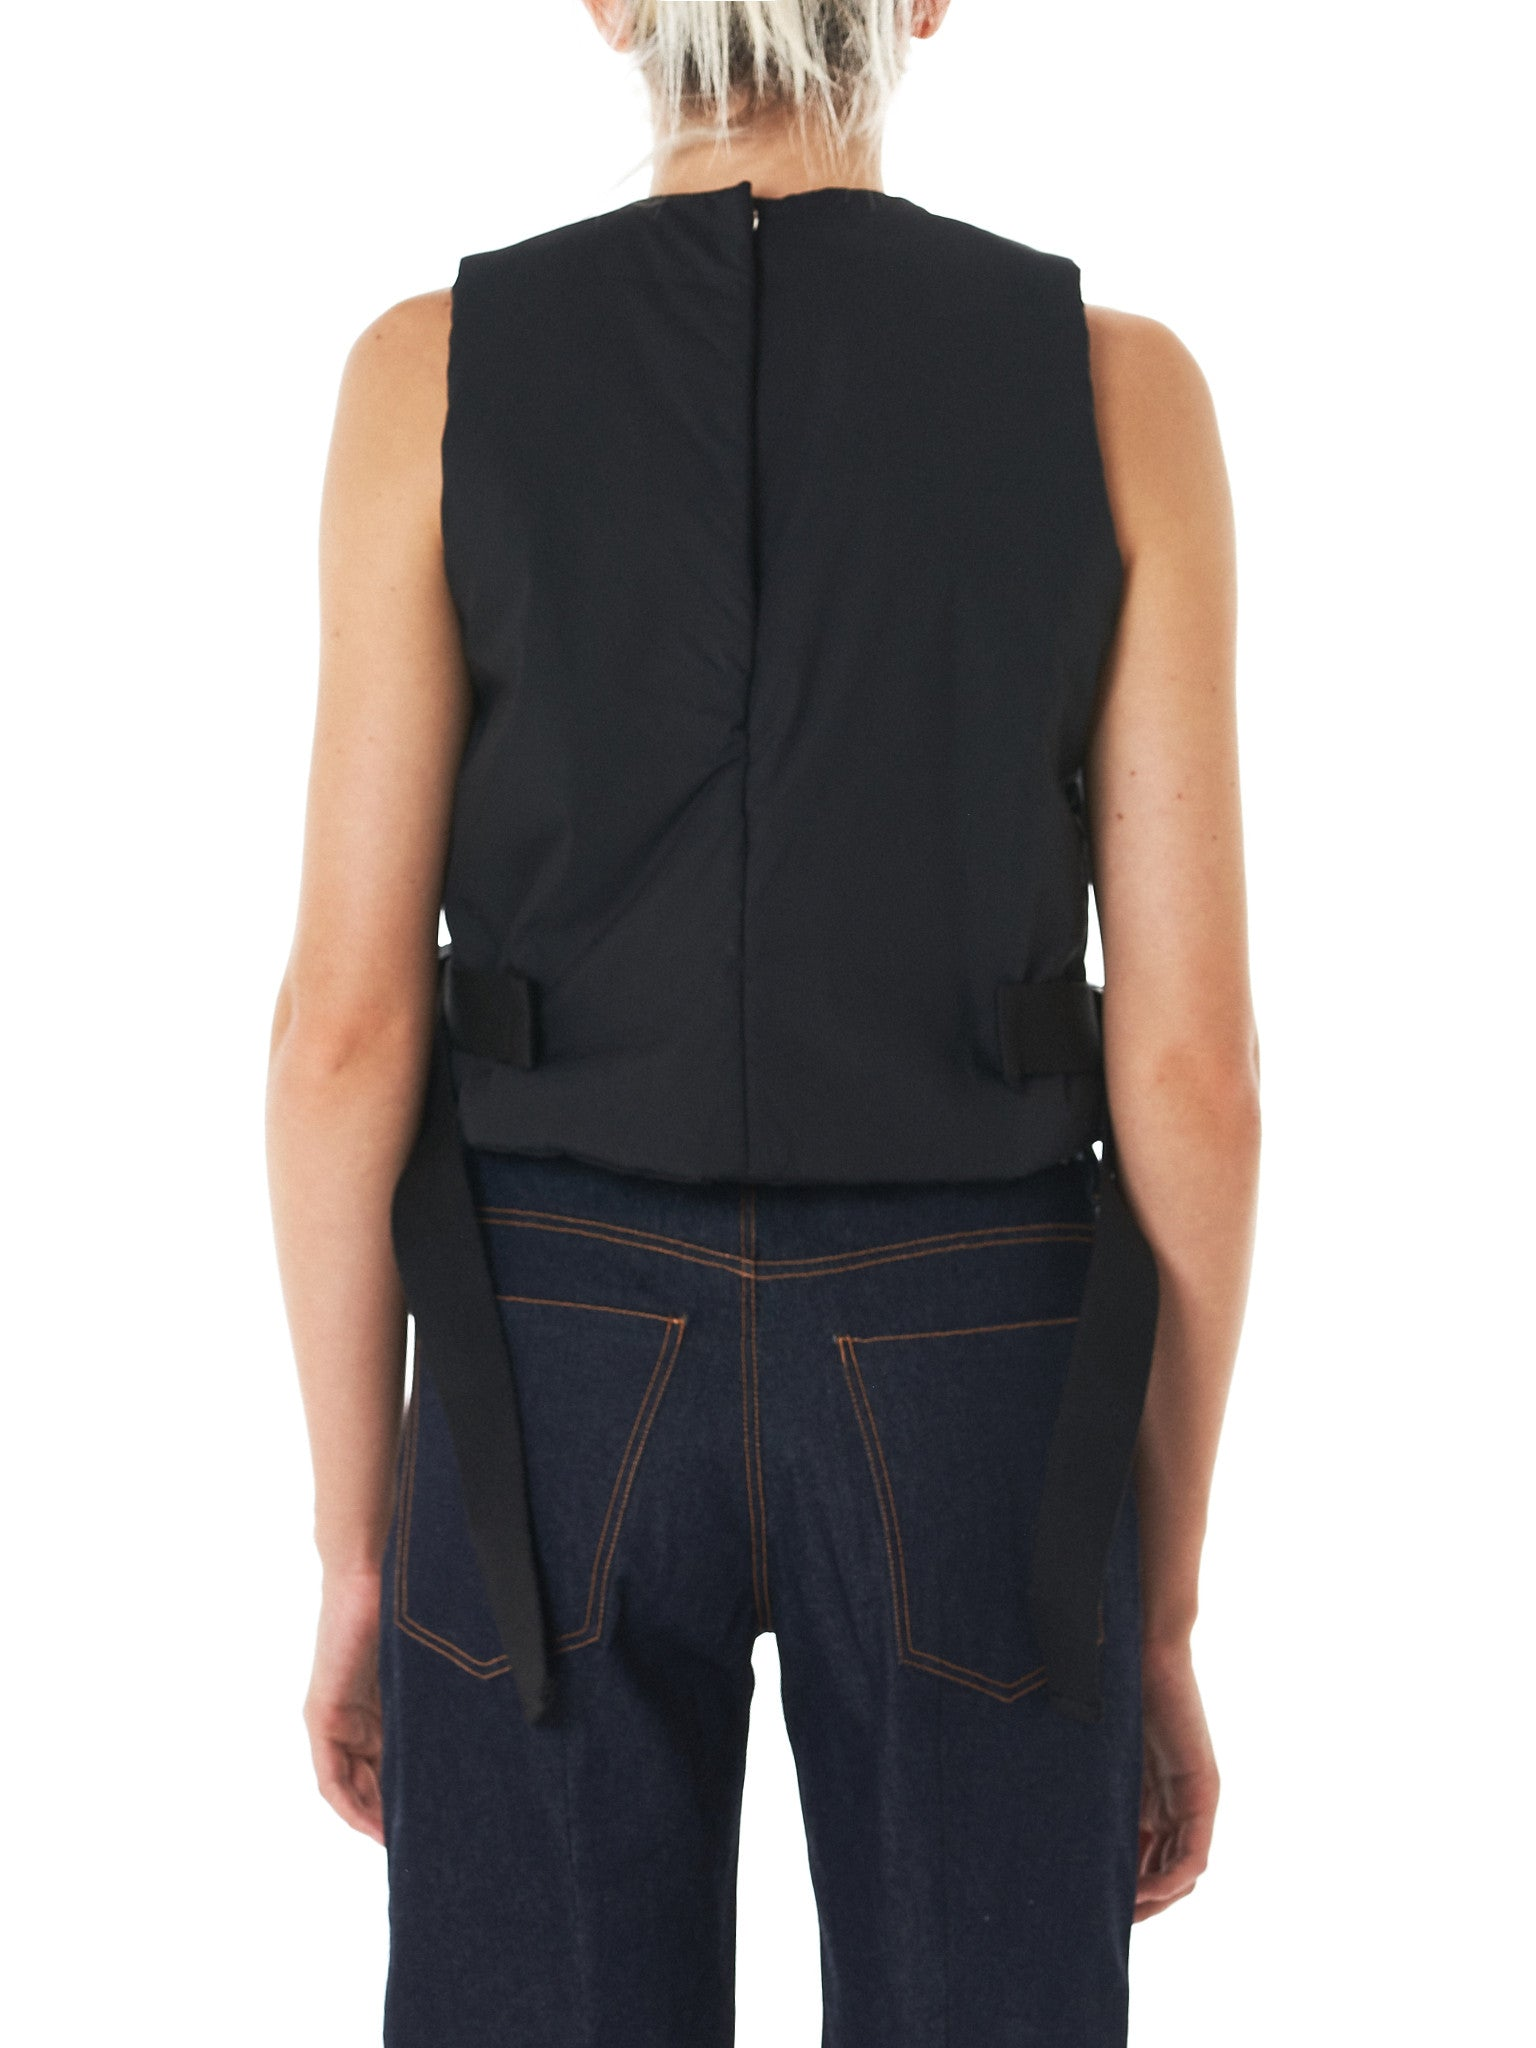 Padded Cotton Vest (17FW-3-BLACK)